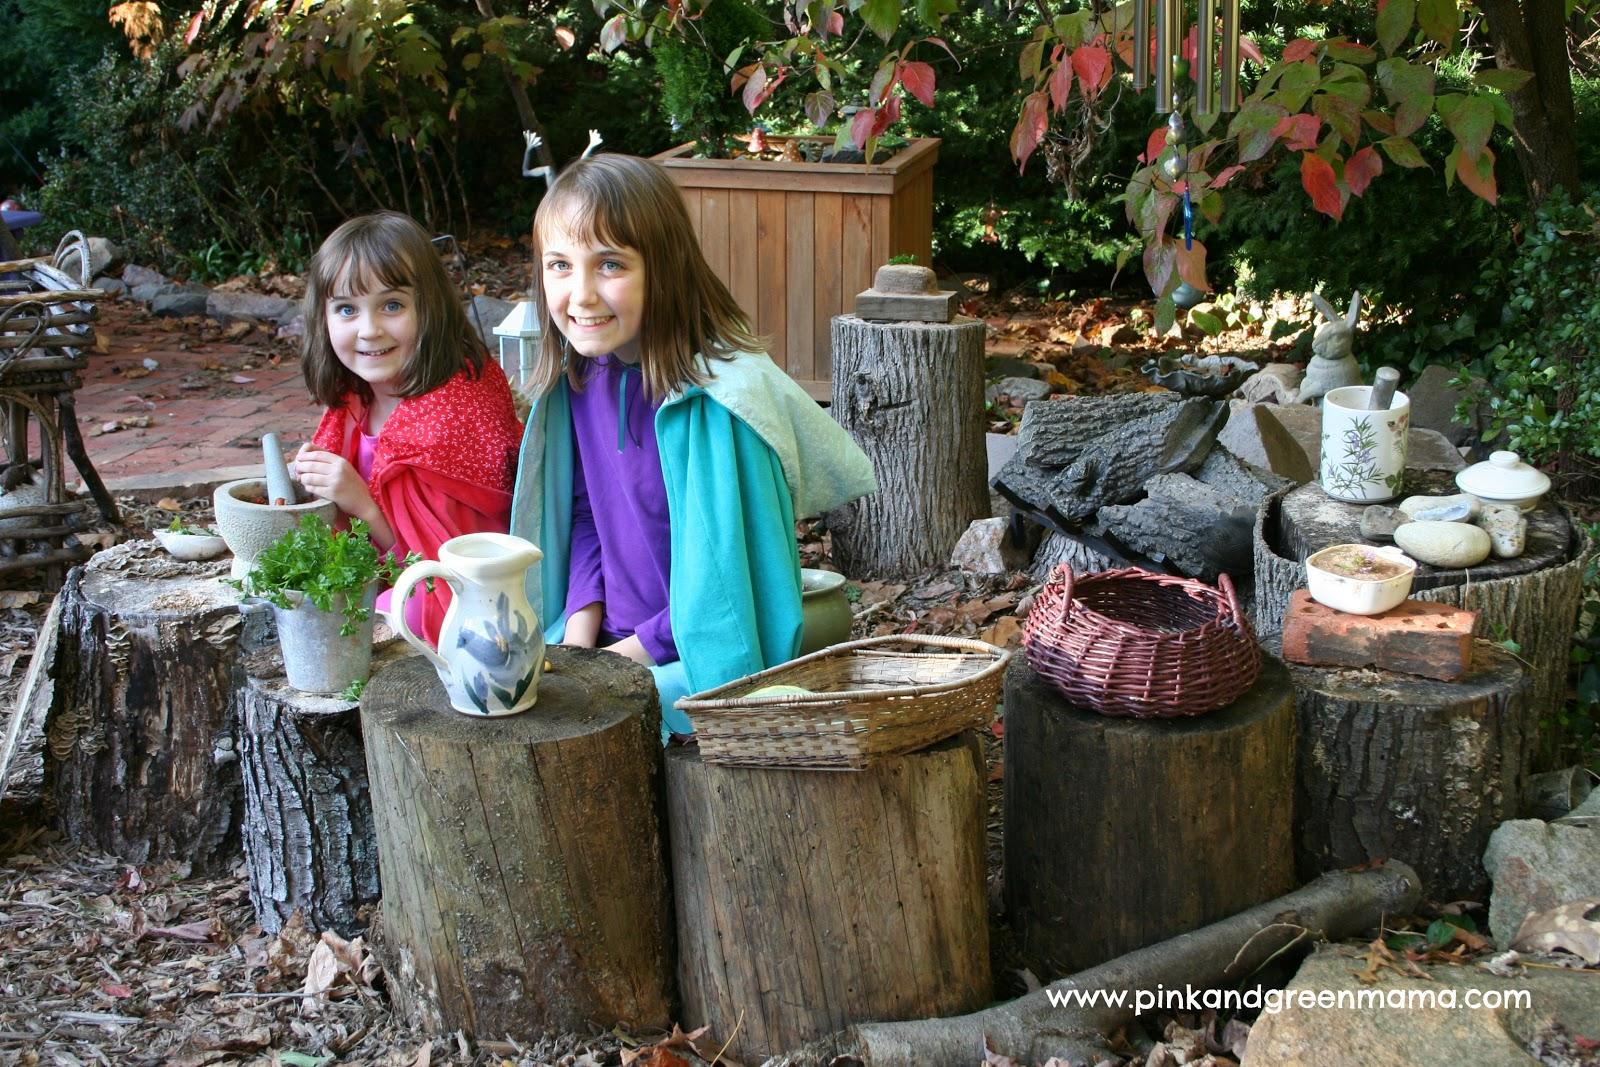 The Art Photo Diy Backyard Makeover On A Budget With